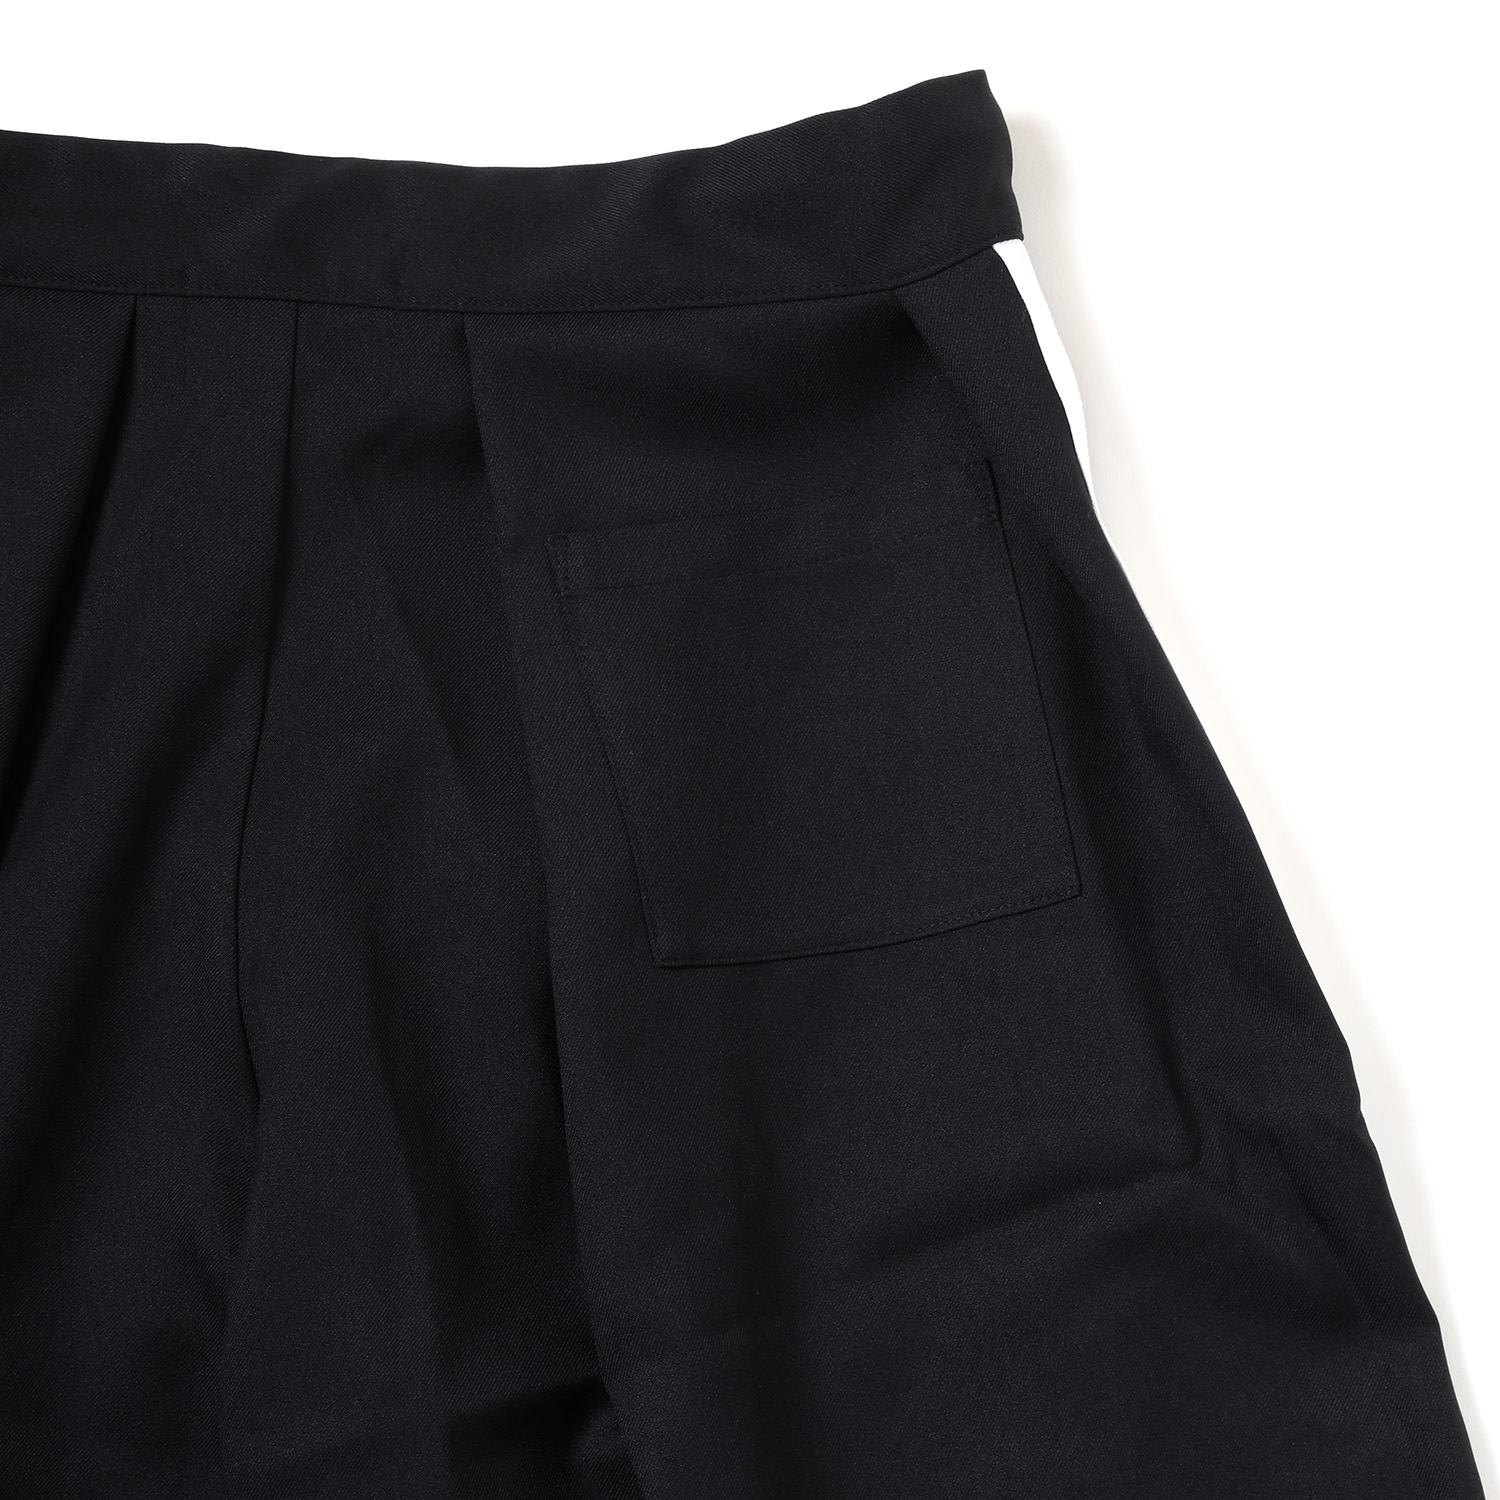 EVANGELION HAKAMA PANTS (BLACK×WHITE)